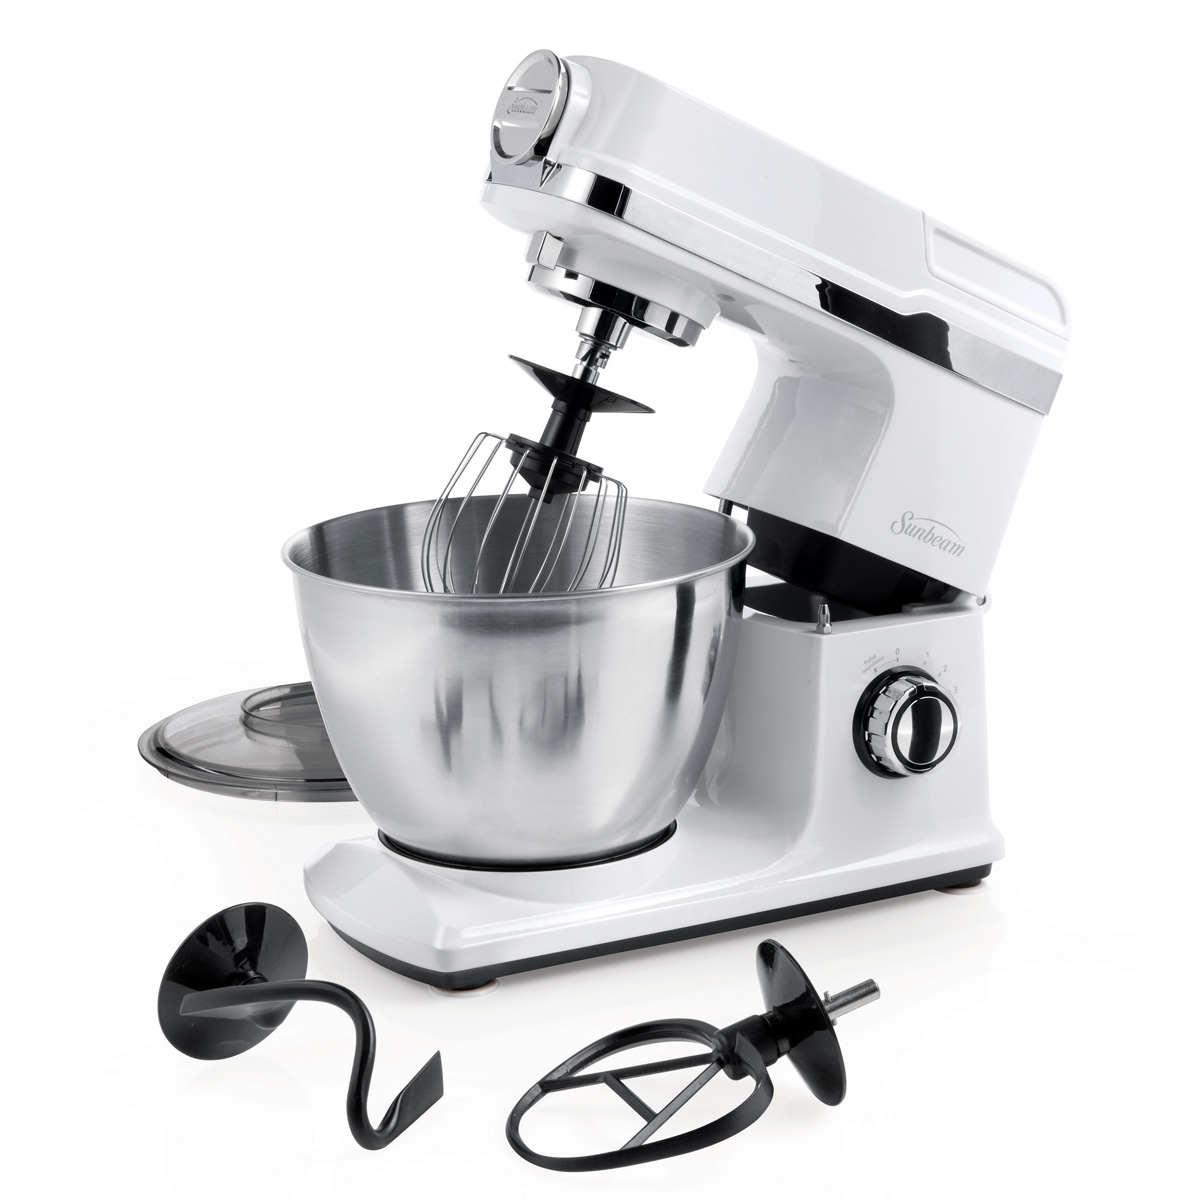 It all started with the Cuisinart food processor, an innovation that made cooking easier back in